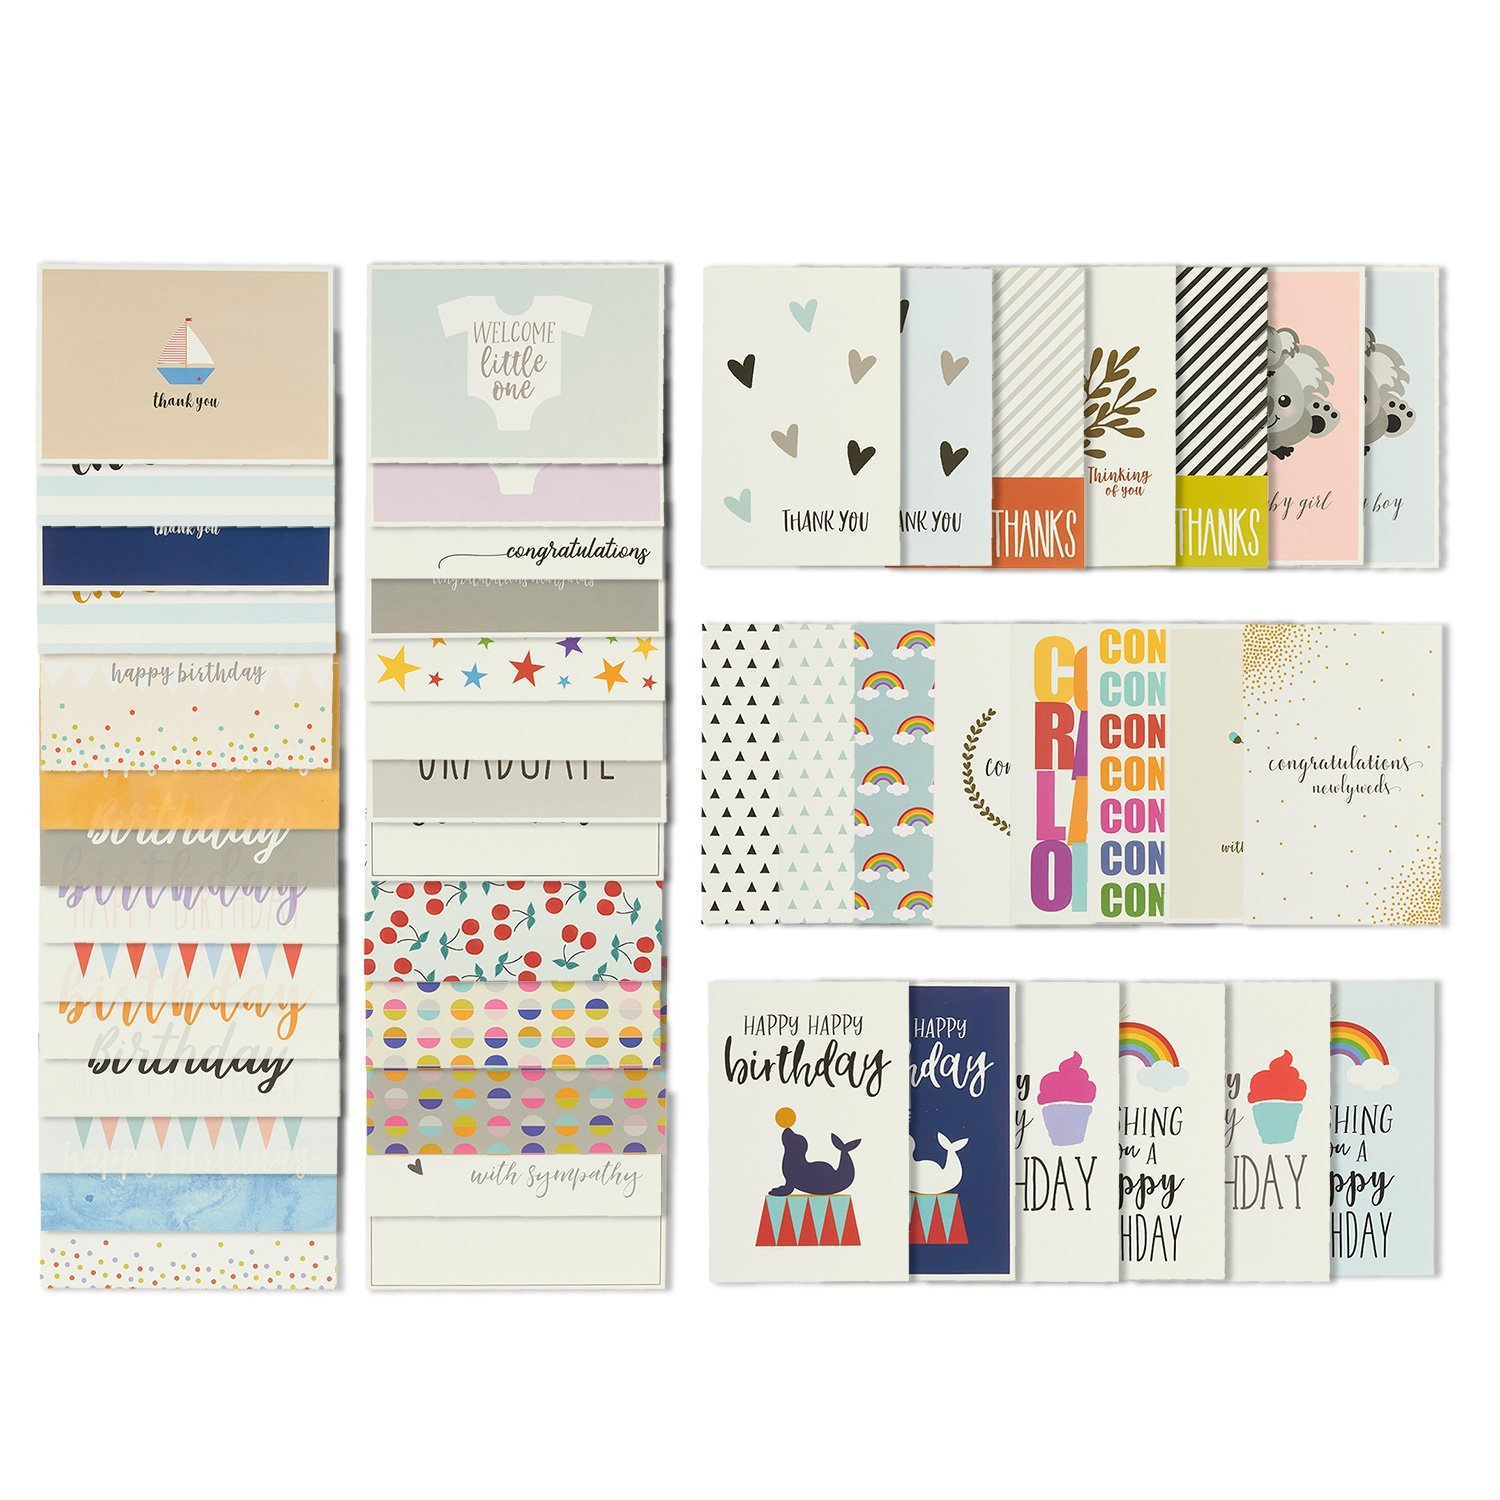 Buy 48 all occasion greeting cards assorted happy birthday thank 48 all occasion greeting cards assorted happy birthday thank you wedding blank m4hsunfo